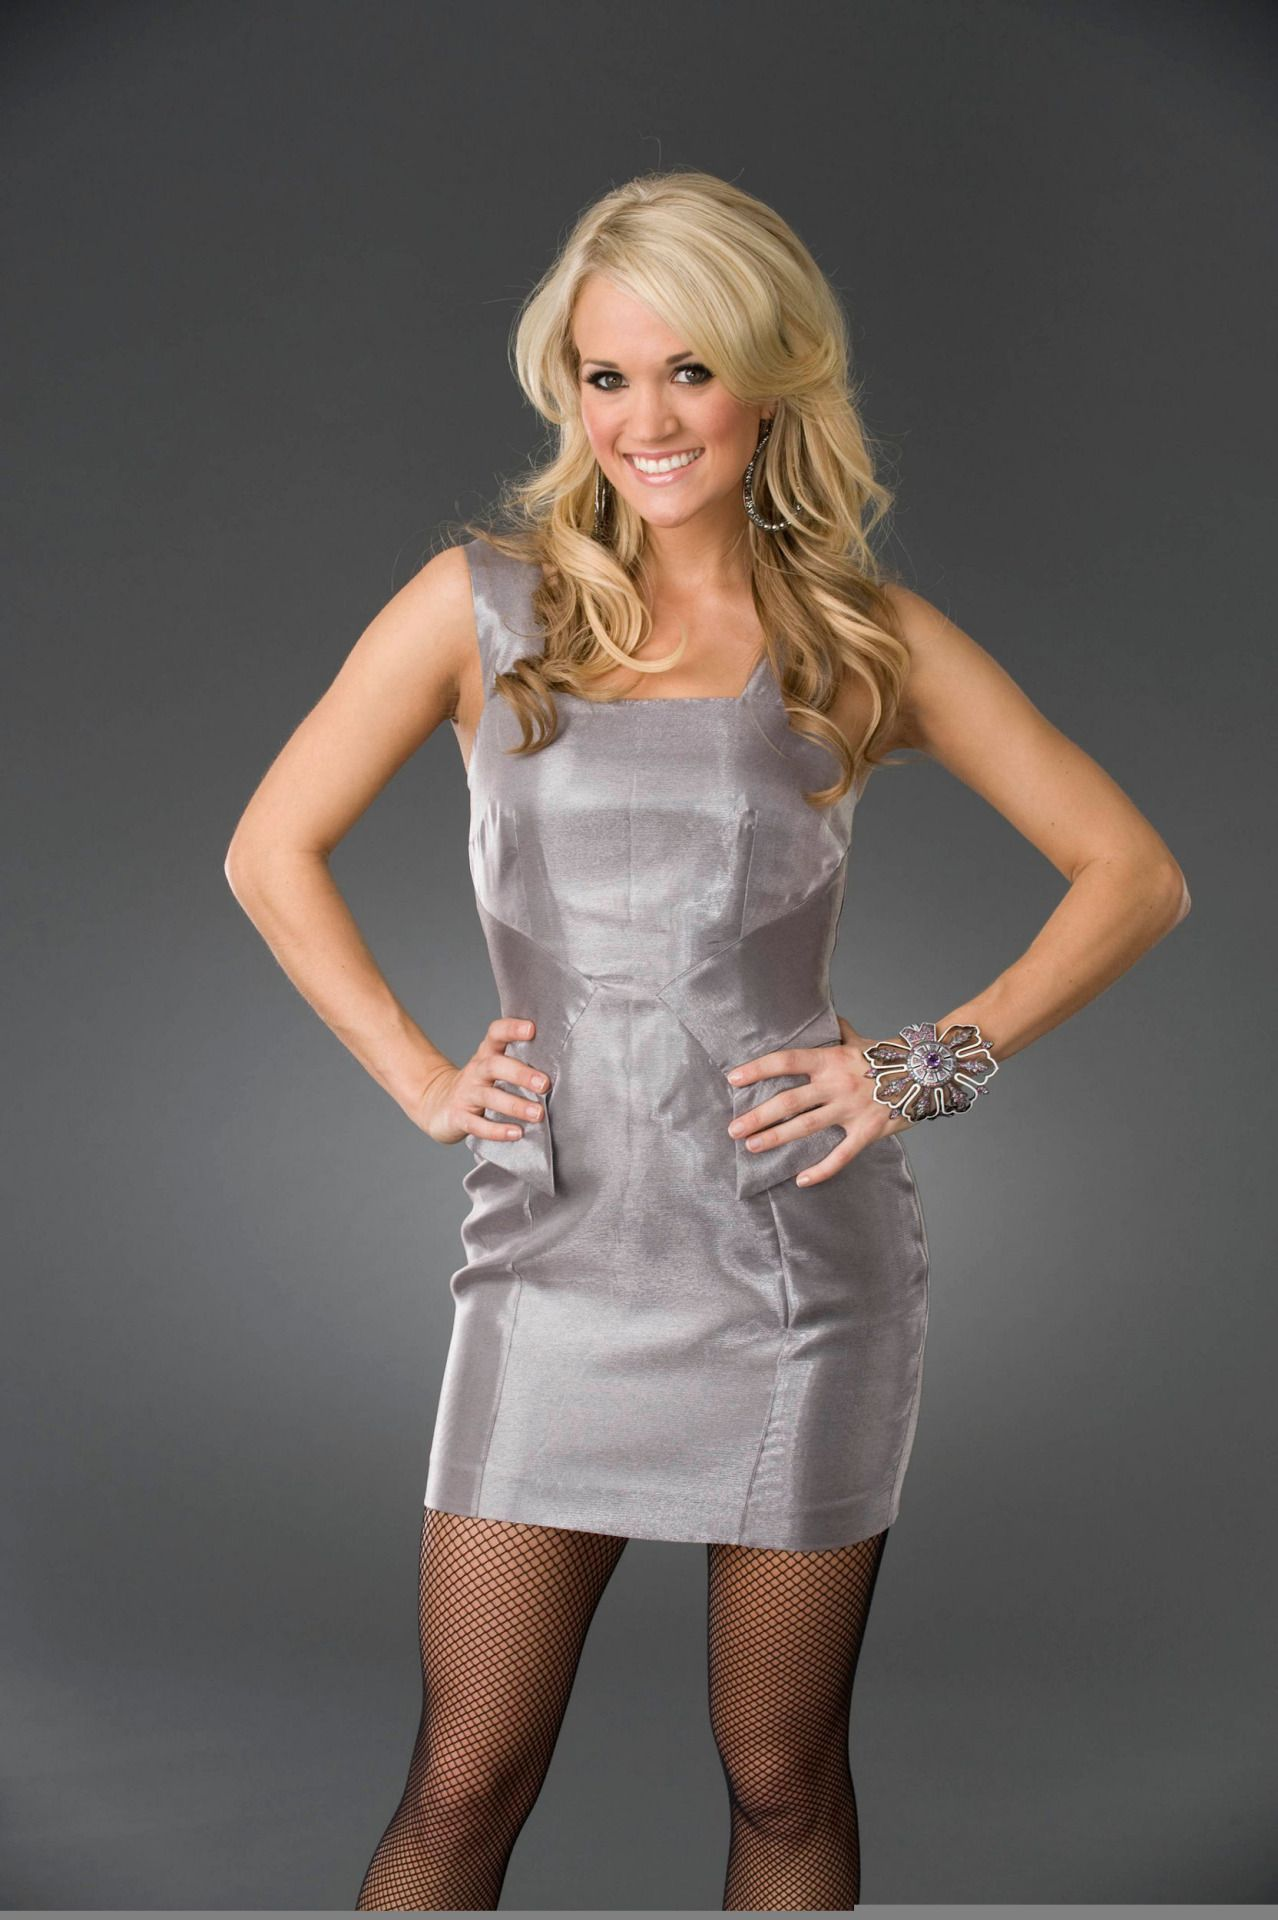 Truckyeahcountrystars  Misc 2  Carrie Underwood, Carrie -4940